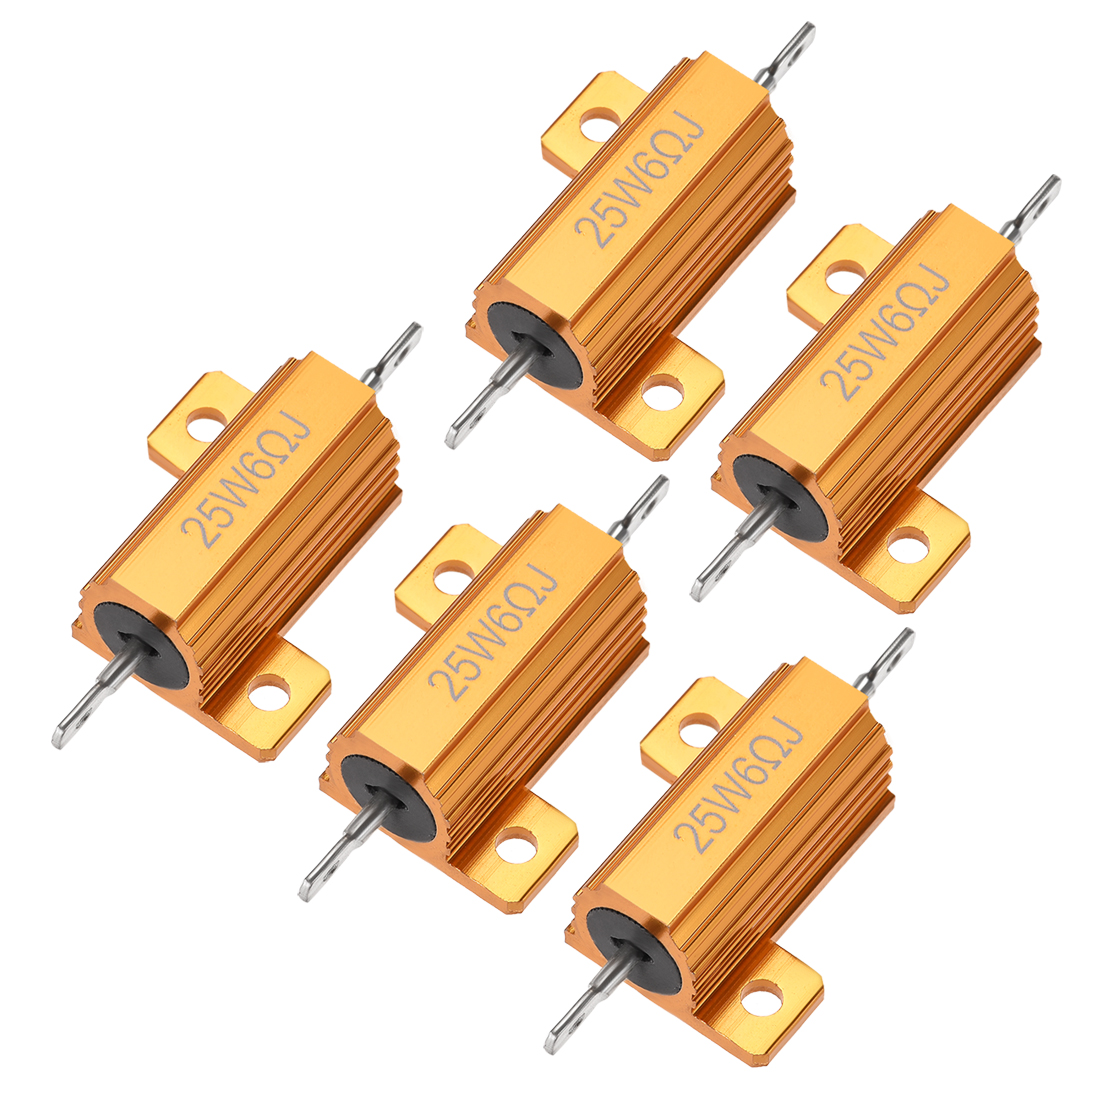 25W 6 Ohm 5% Aluminum Housing Resistor Wirewound Resistor Gold Tone 5 Pcs